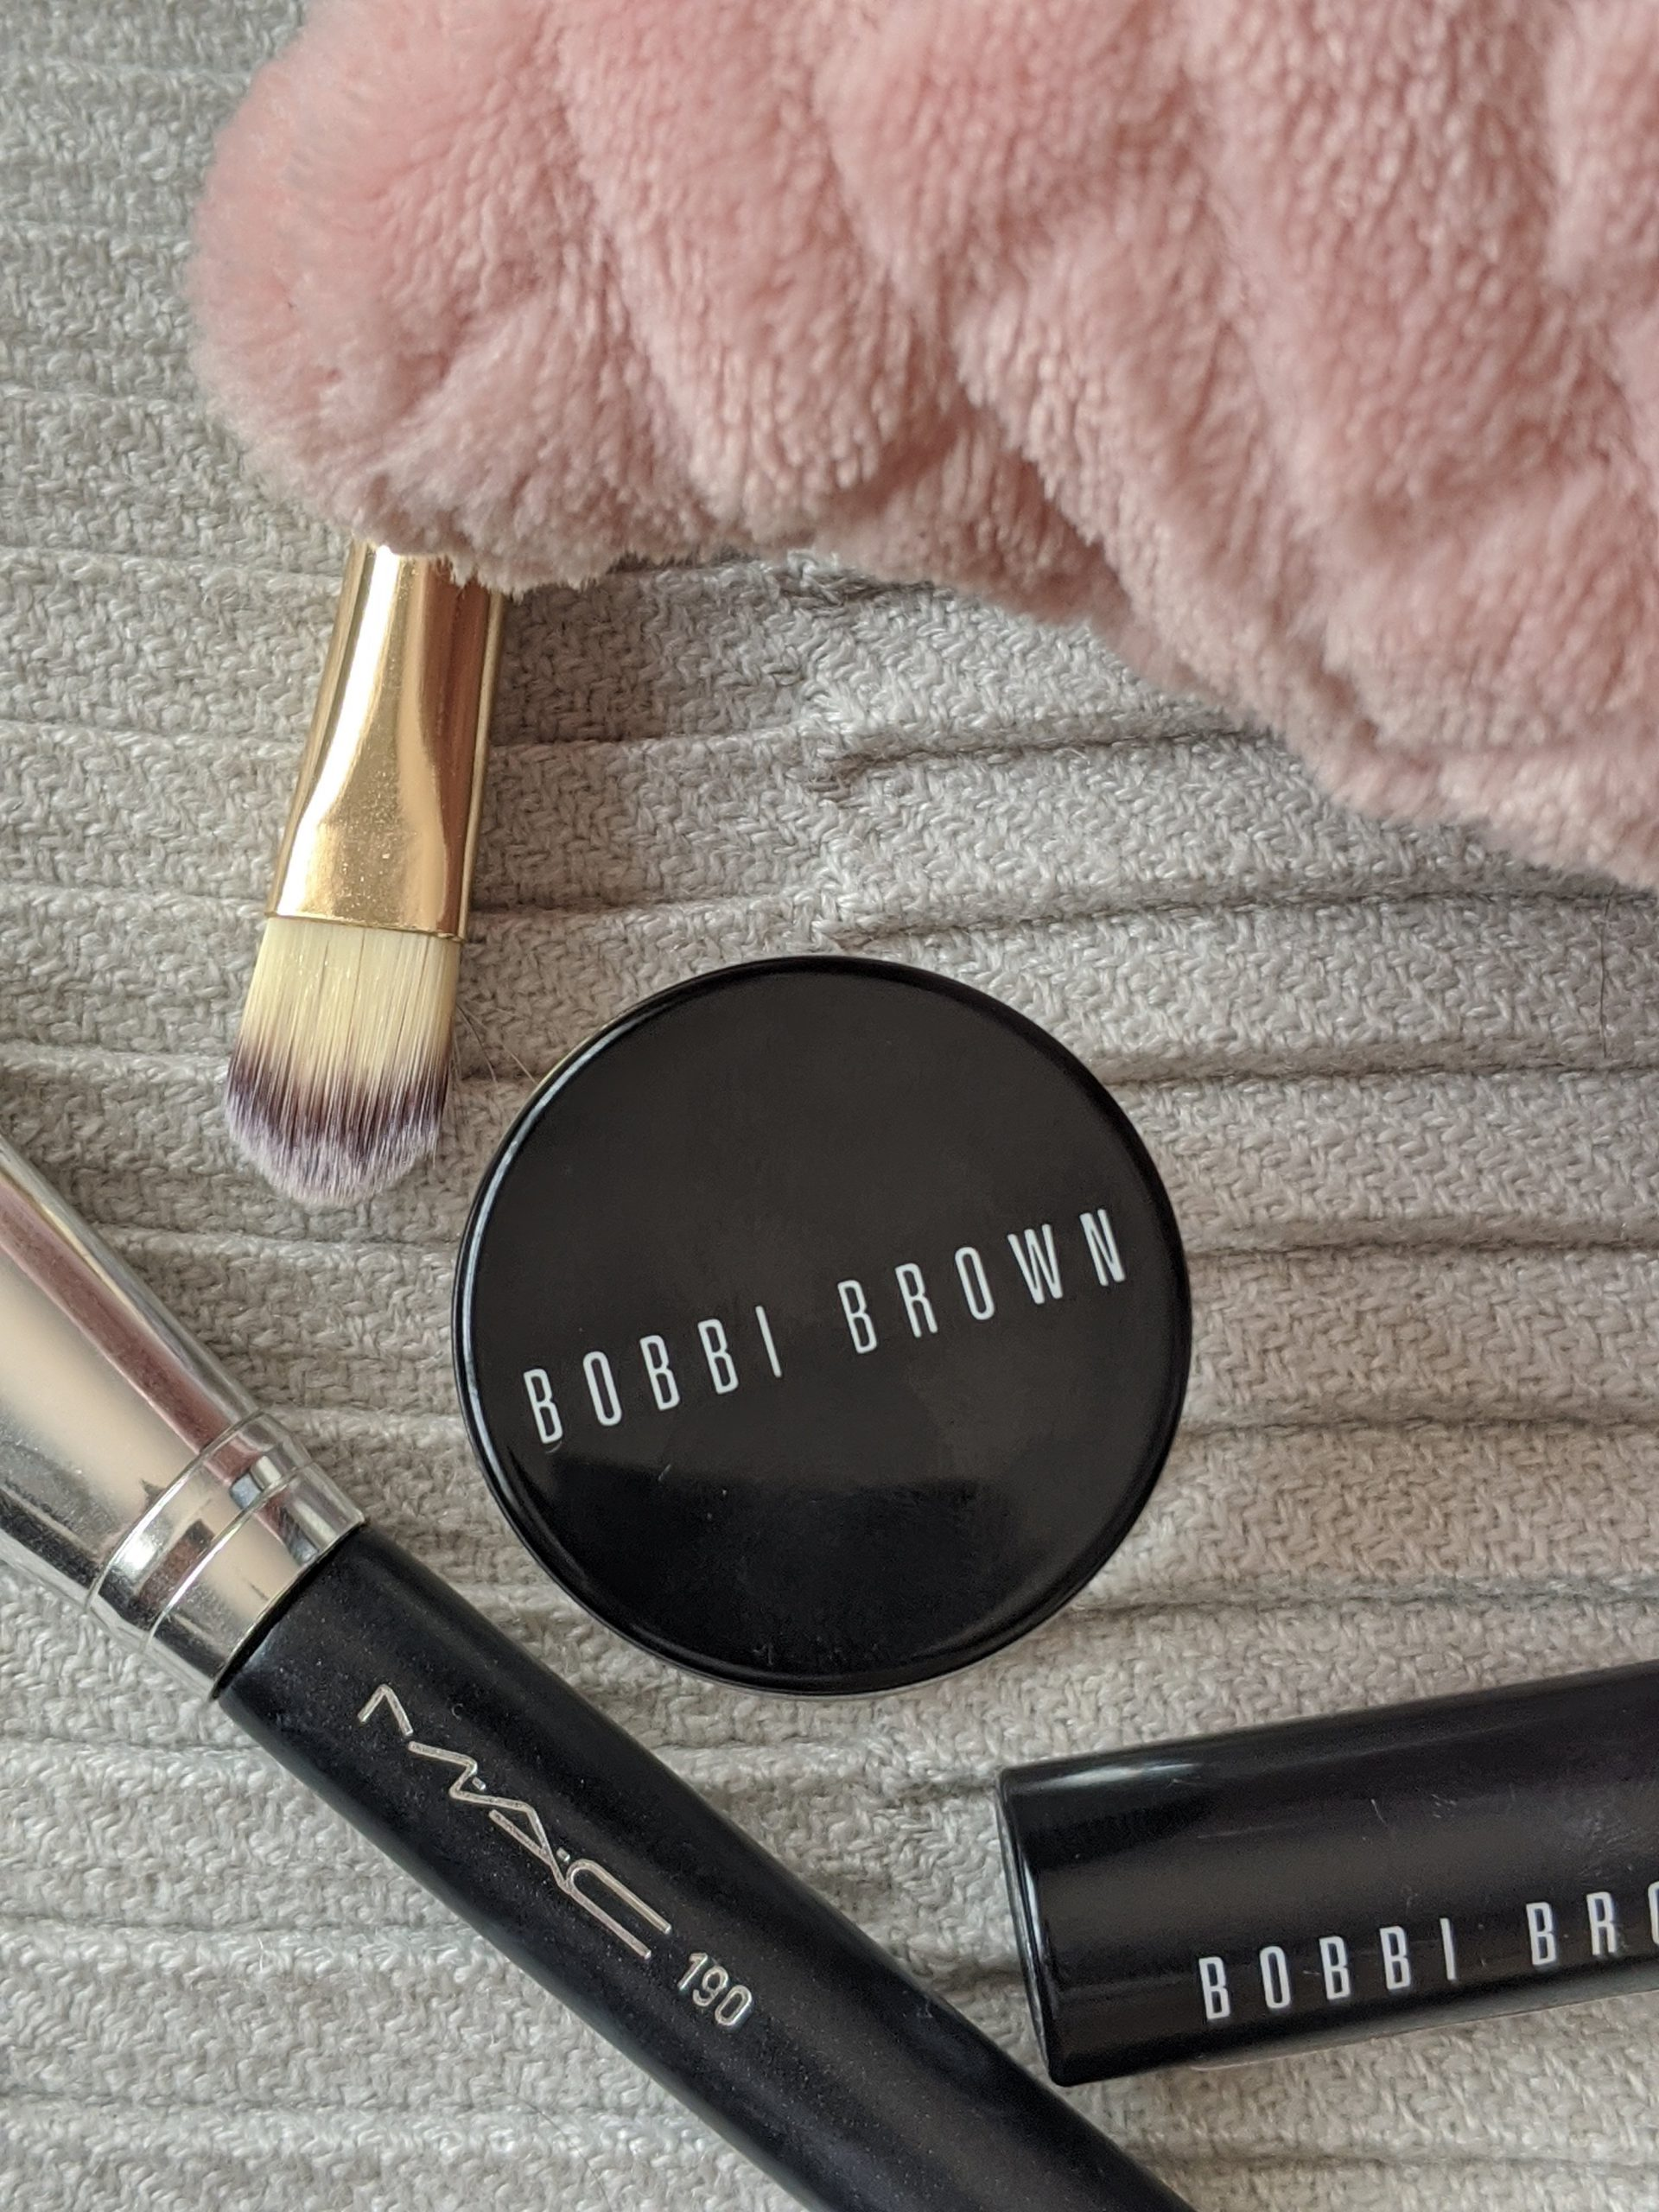 Product Pick of the Month: Bobbi Brown VitaminE Enriched Face Base